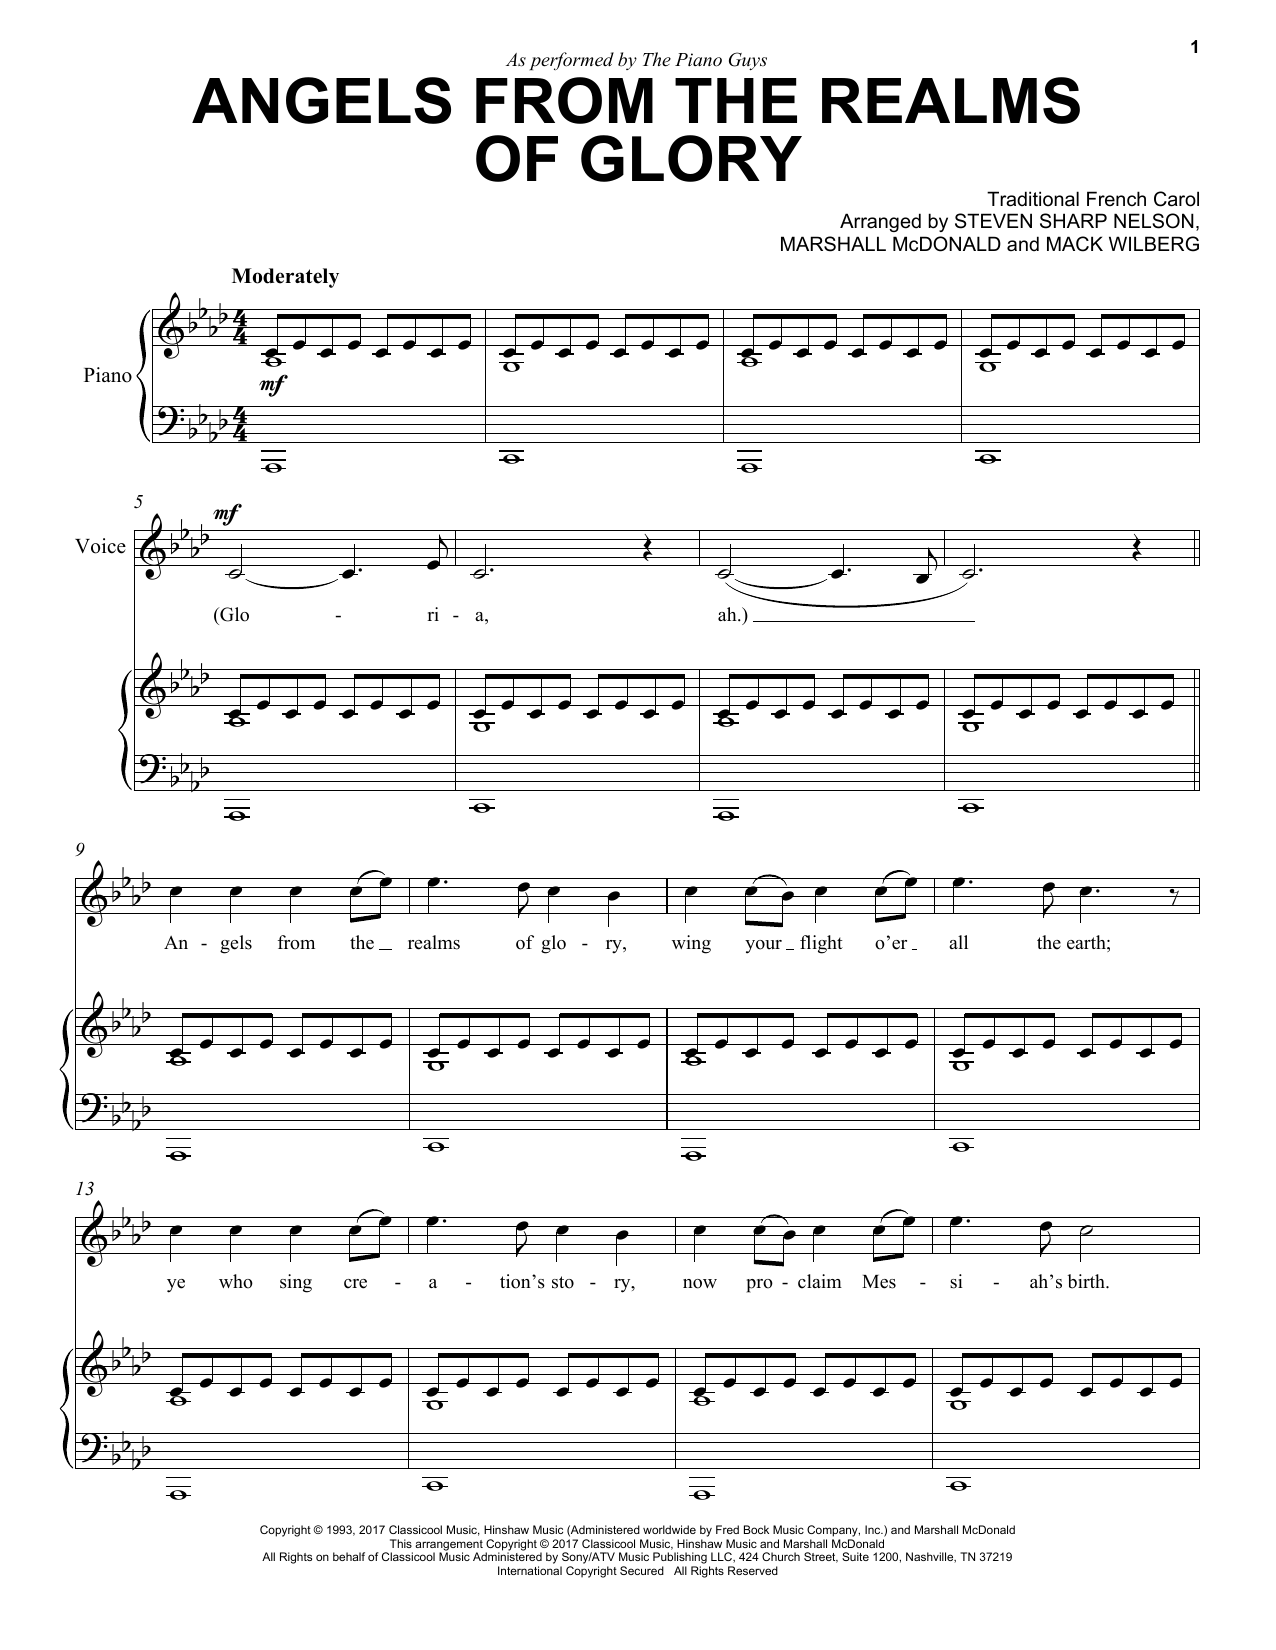 Download The Piano Guys 'Angels From The Realms Of Glory' Digital Sheet Music Notes & Chords and start playing in minutes